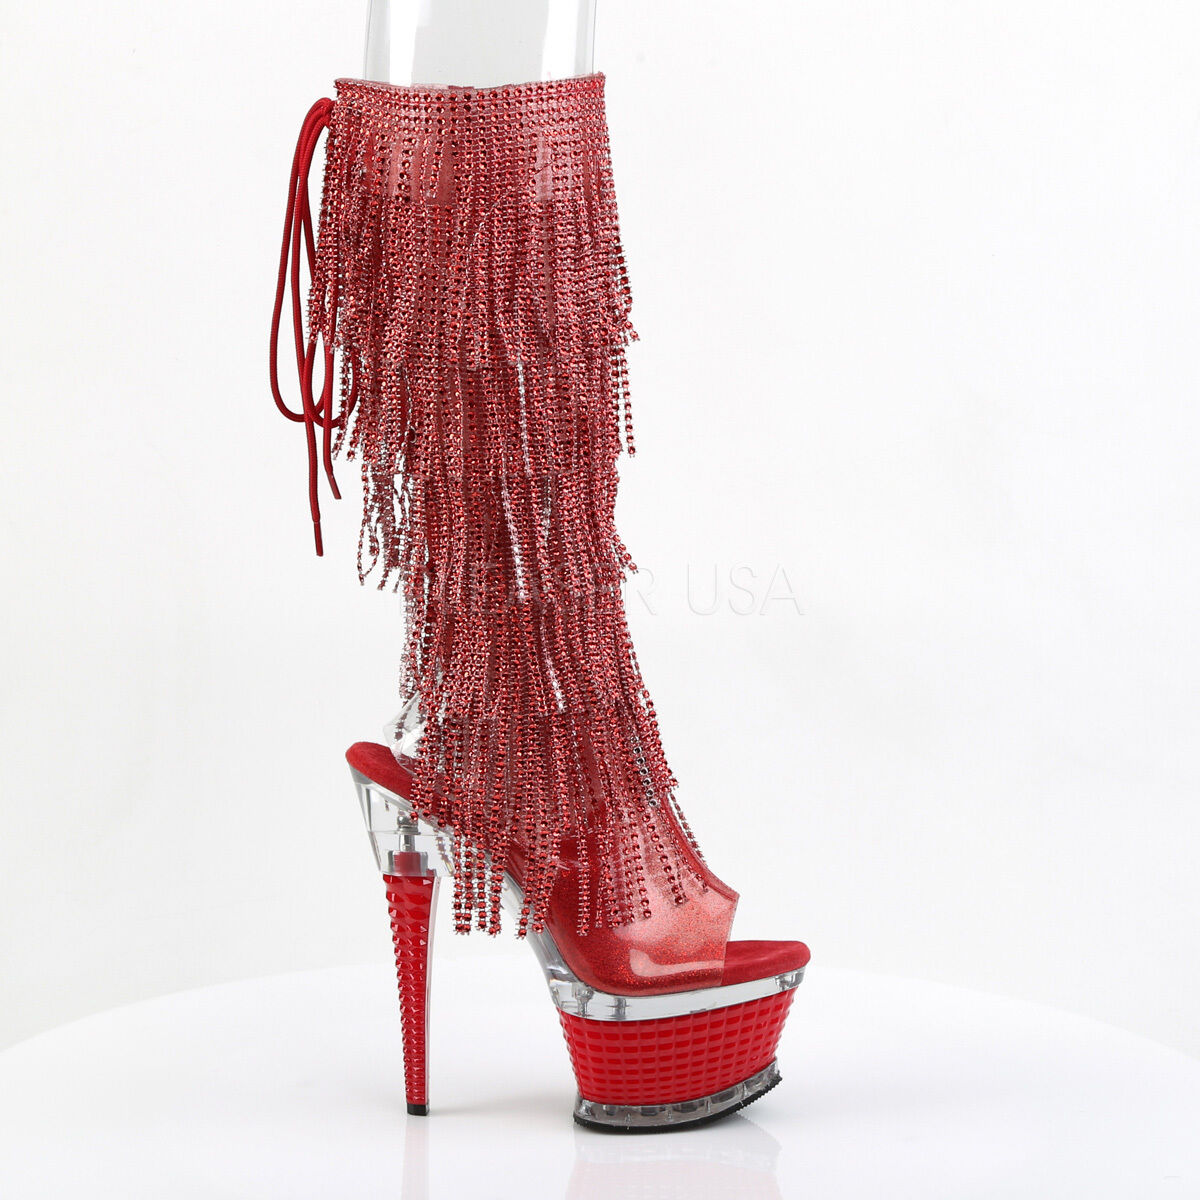 Illusion Facet Heel Fringe Open Toe Platform Knee Boot 6.5